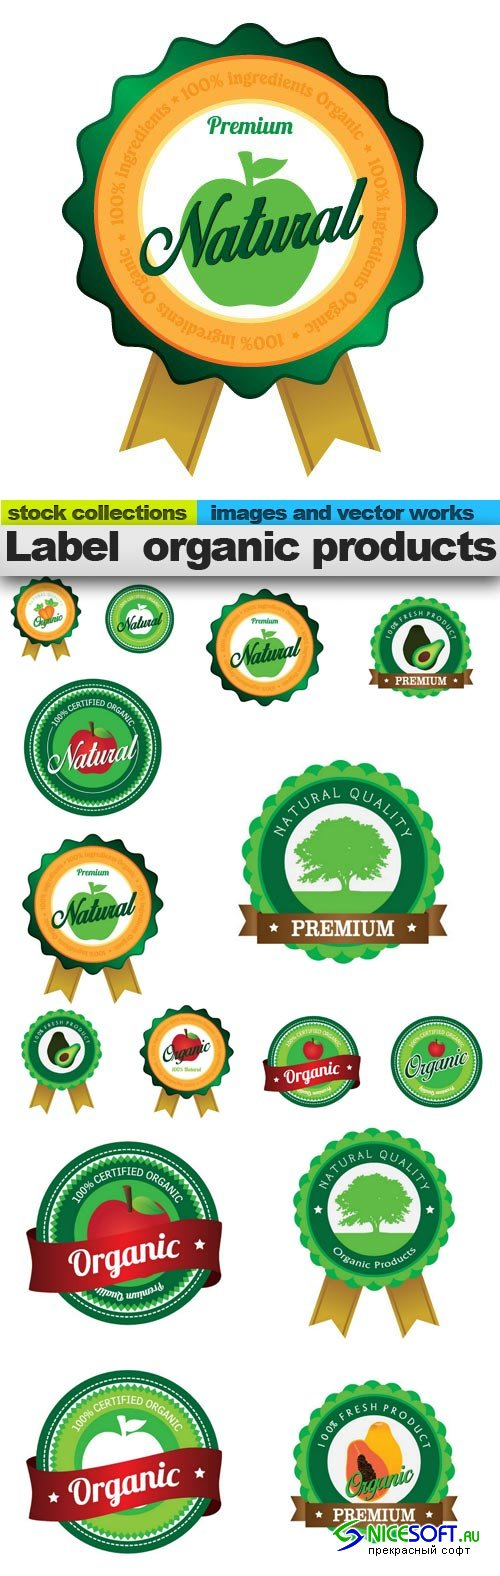 Label  organic products, 15 x EPS